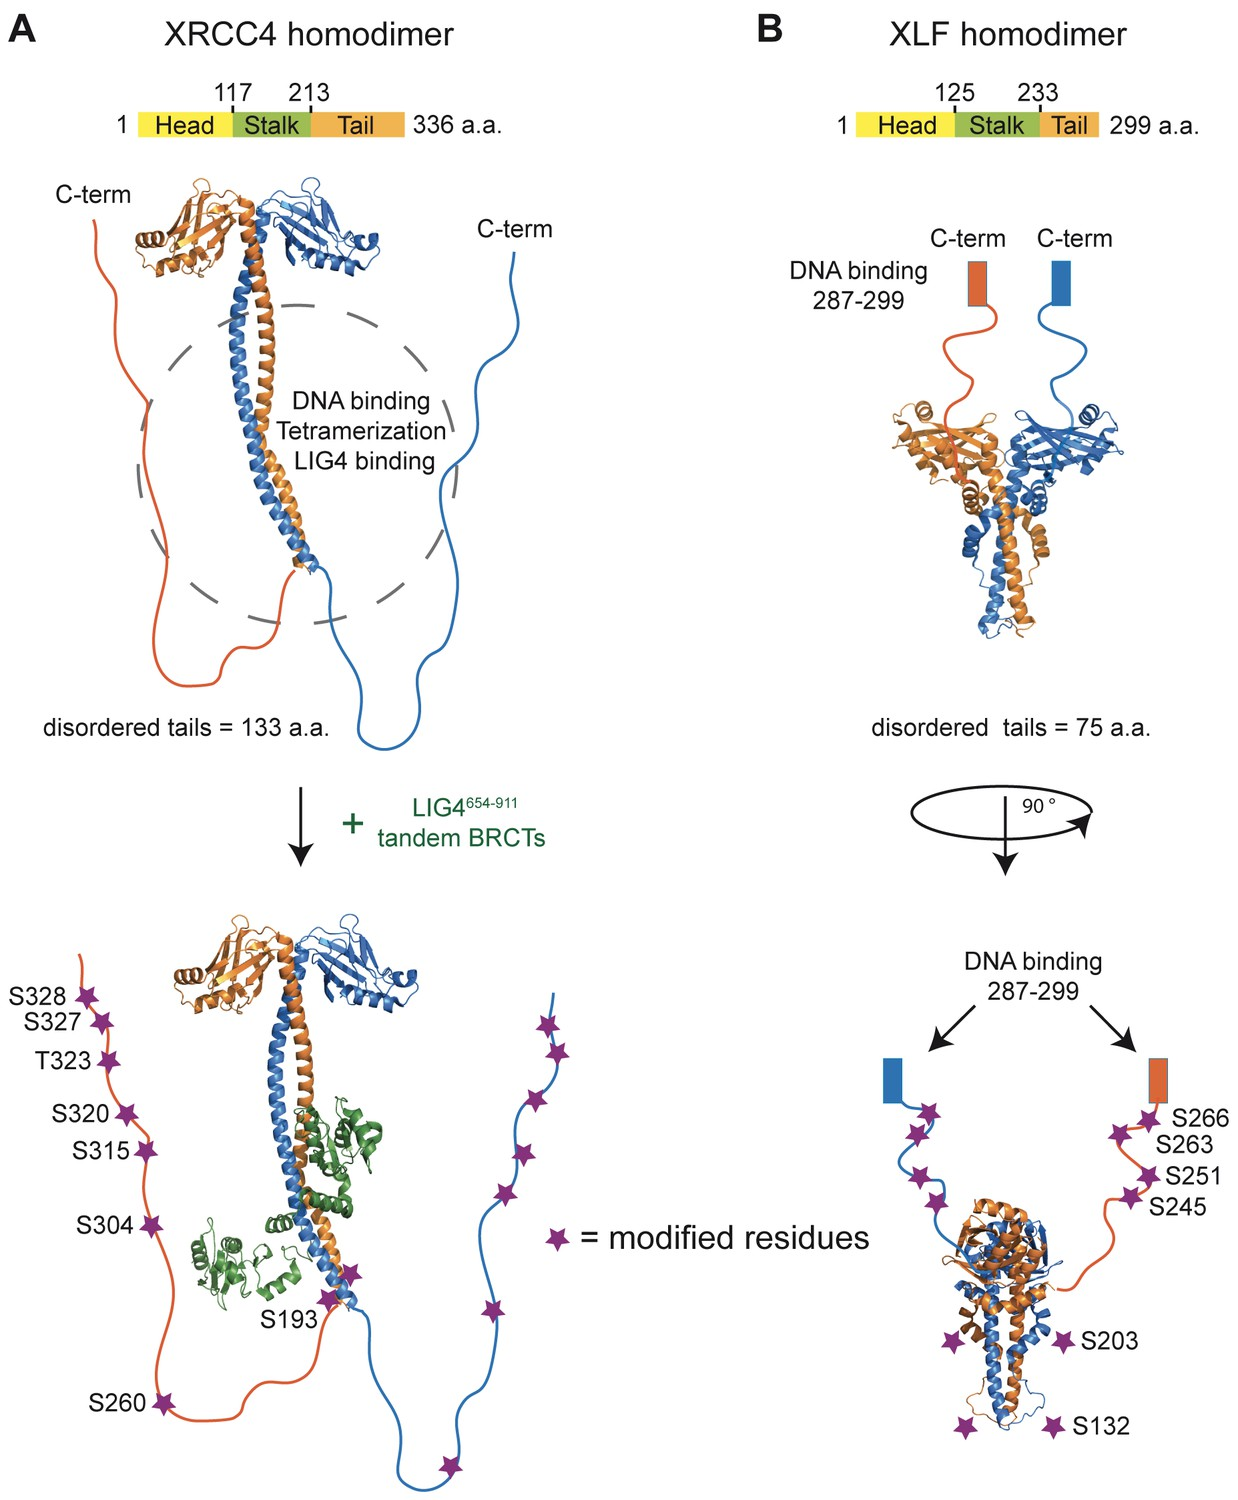 Structural Organization Of XRCC4 And XLF Homodimers